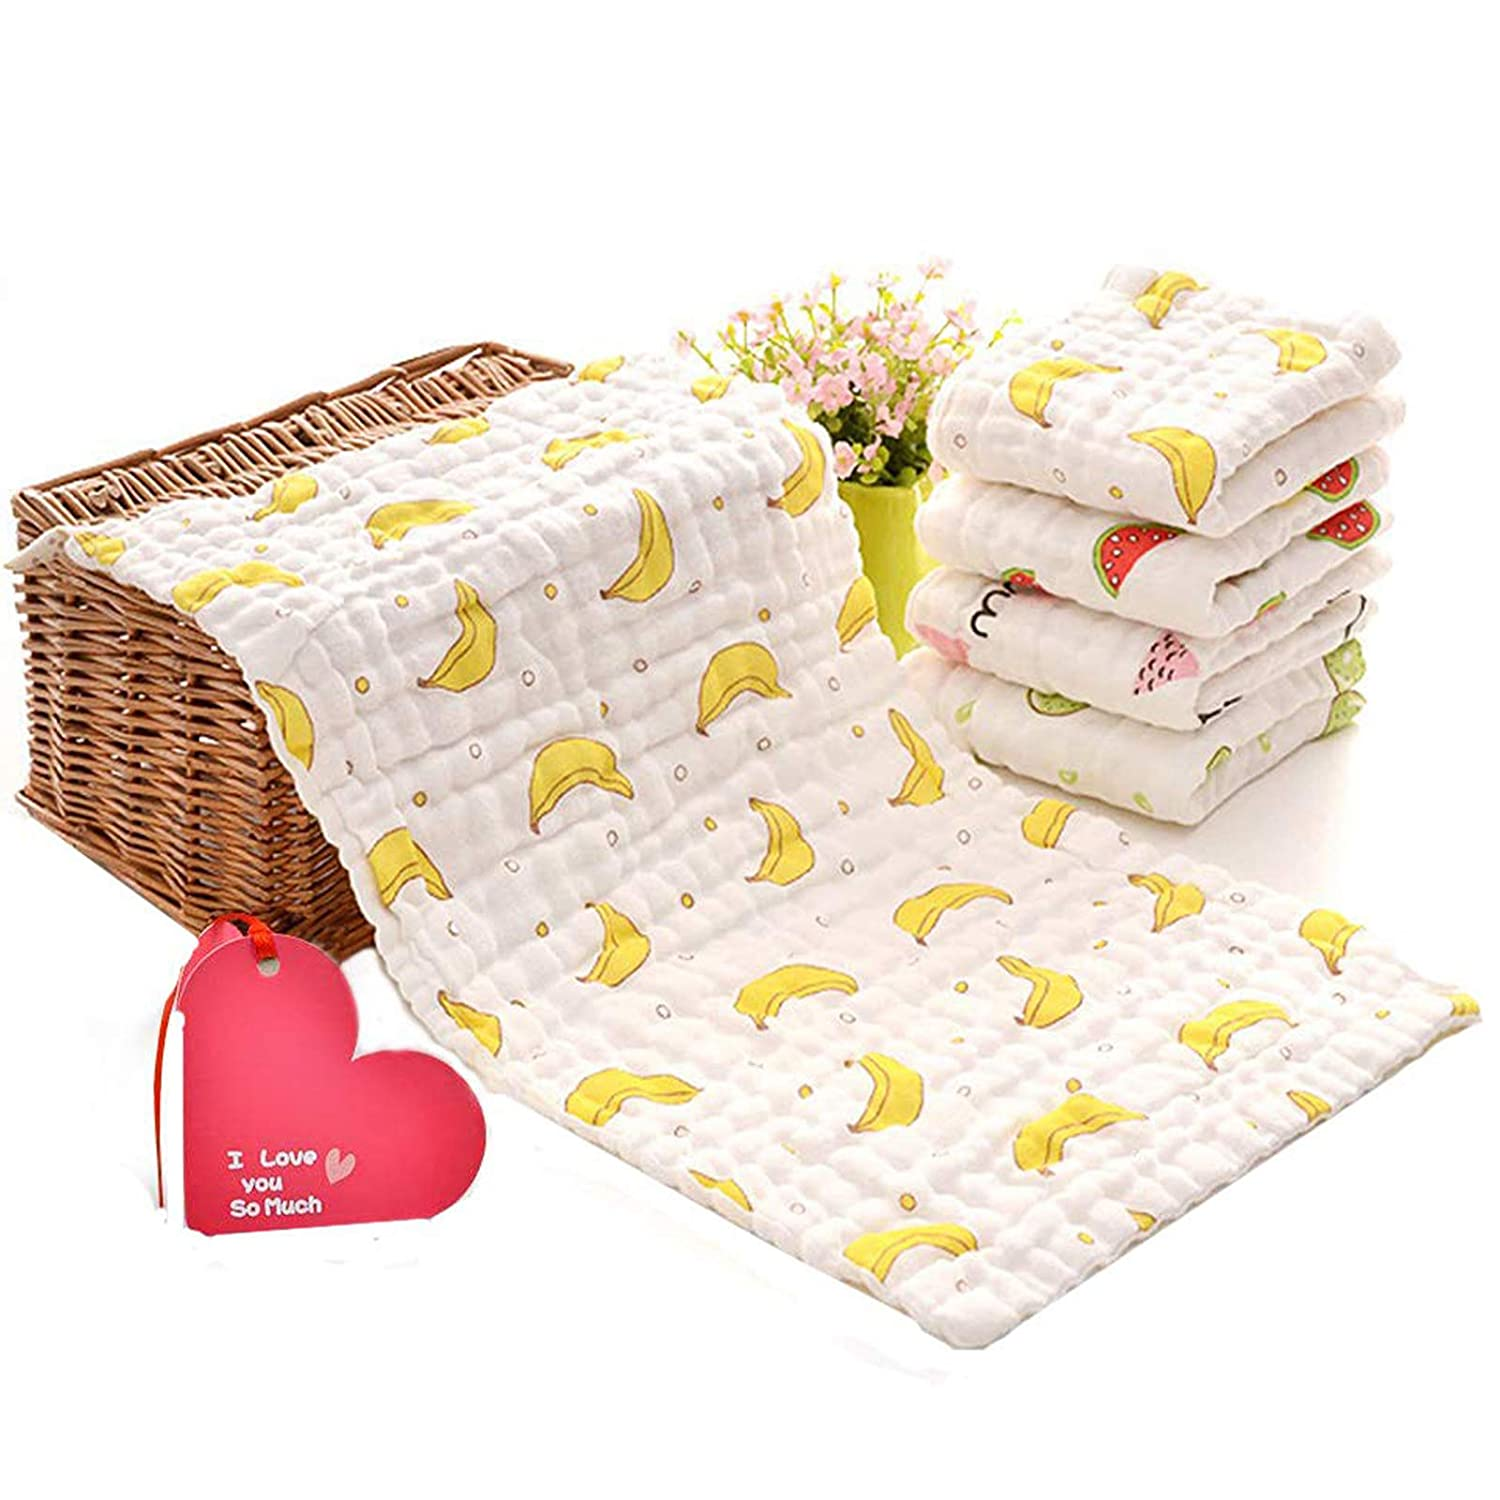 KOROTUS Muslin Baby Burp Cloths Washcloths Face Towels 5-Pack Extra Large 10 X 20 inches 6 Layers Super Absorbent Premium Soft Natural for Sensitive Skin Baby 100% Organic Cotton